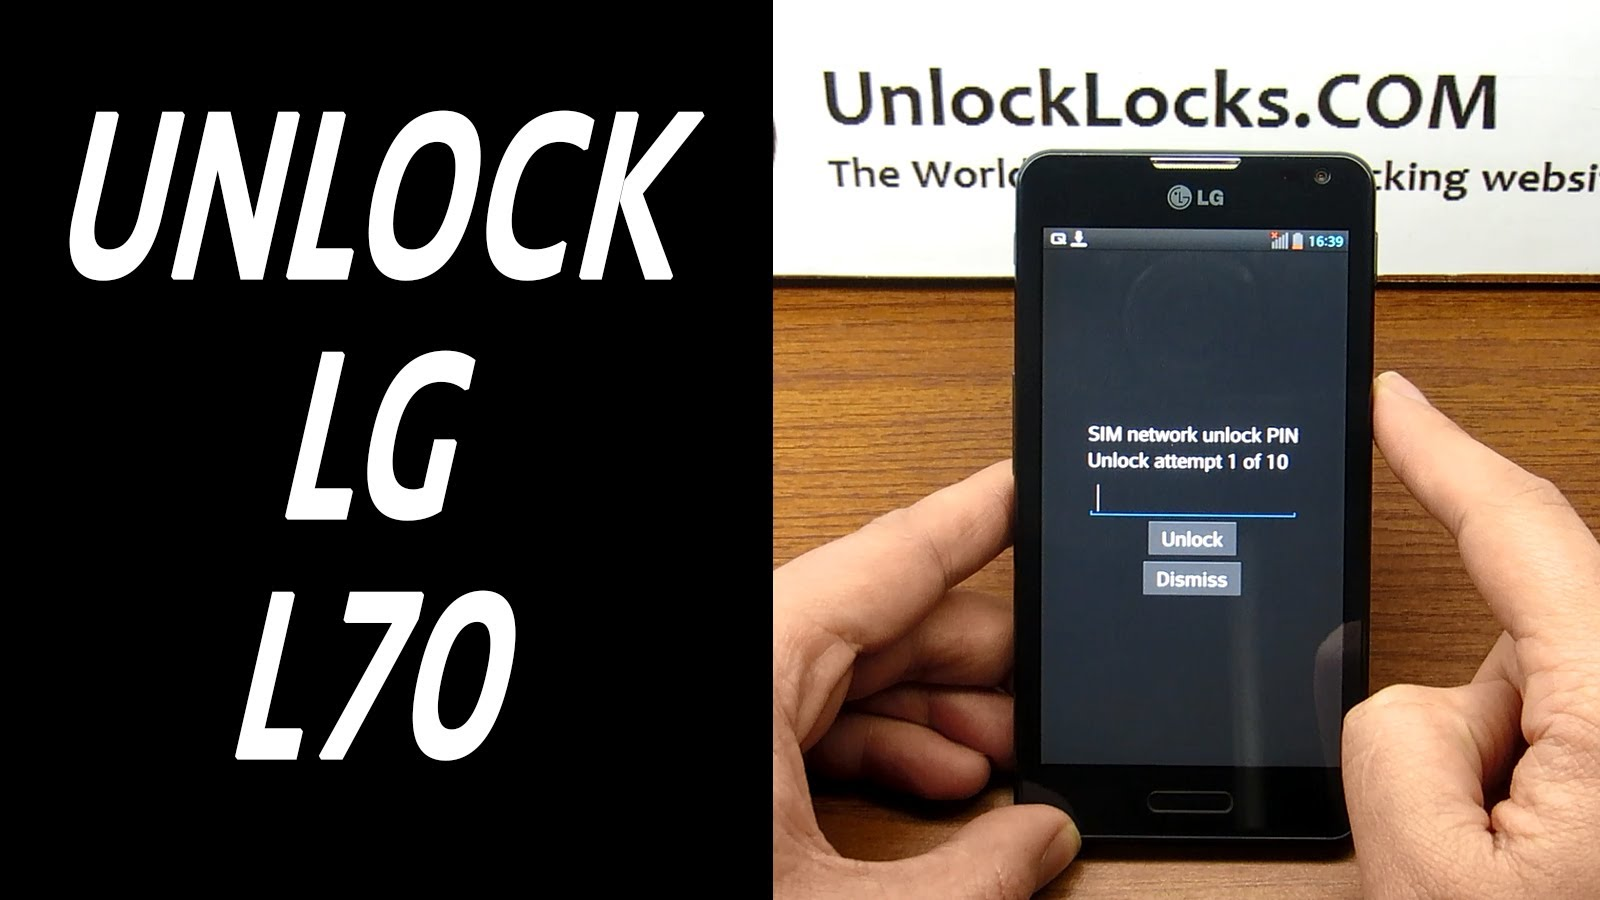 How To Unlock LG L70 (D320, D321, D320N, D320F, D325 and